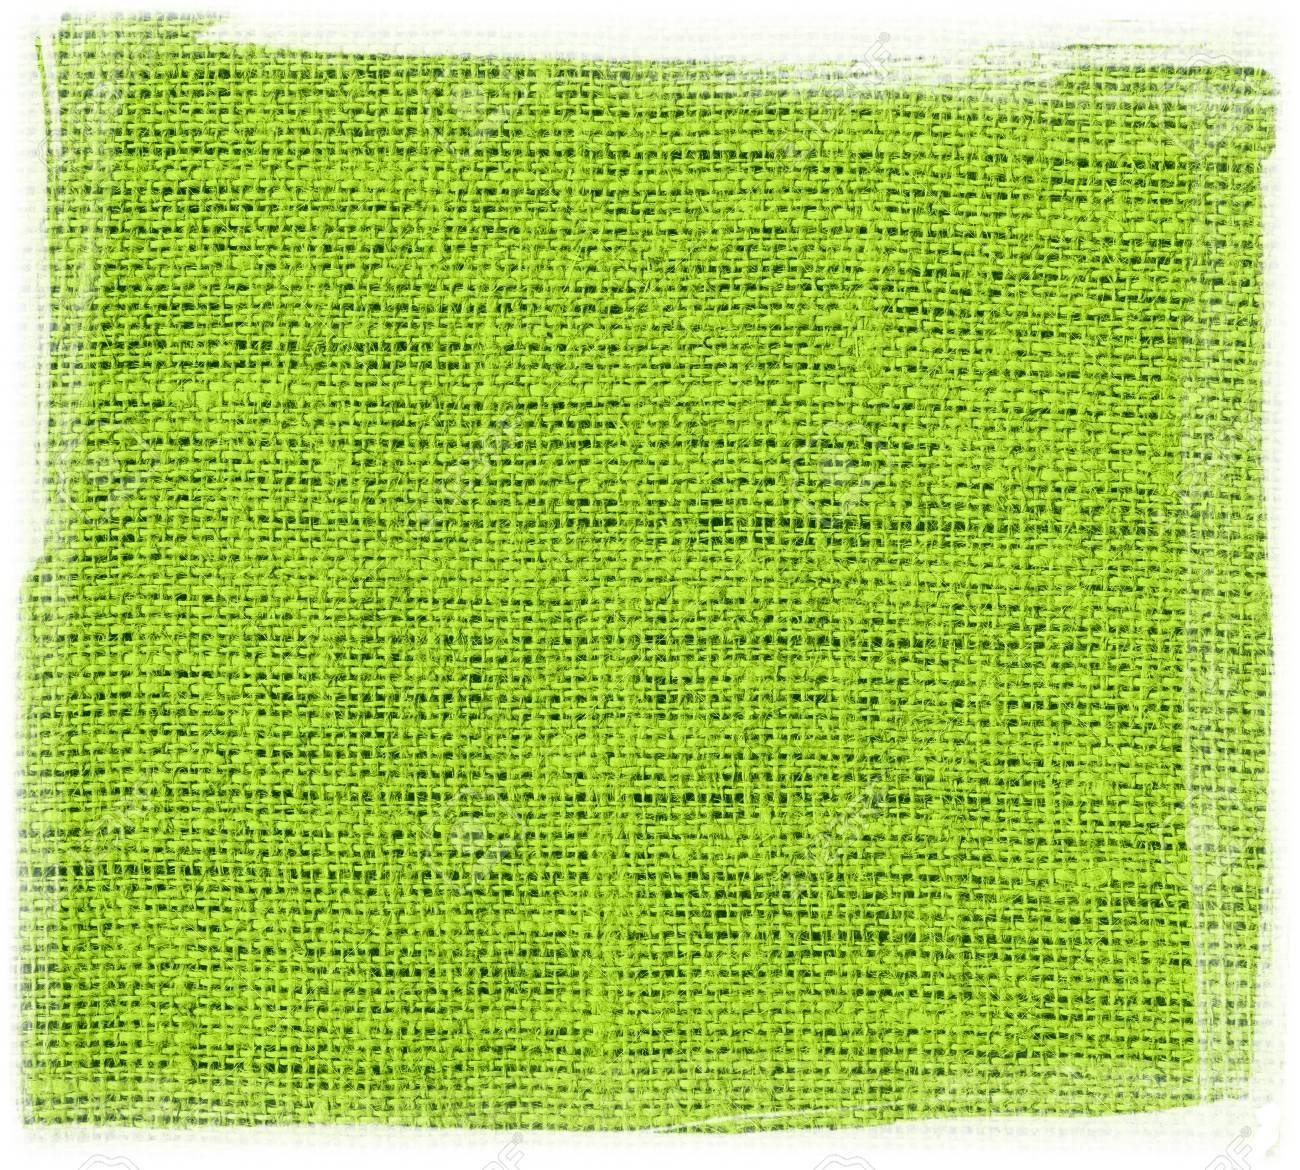 Lime Burlap Jute Fabric With Frame Textured Background Stock Photo ...